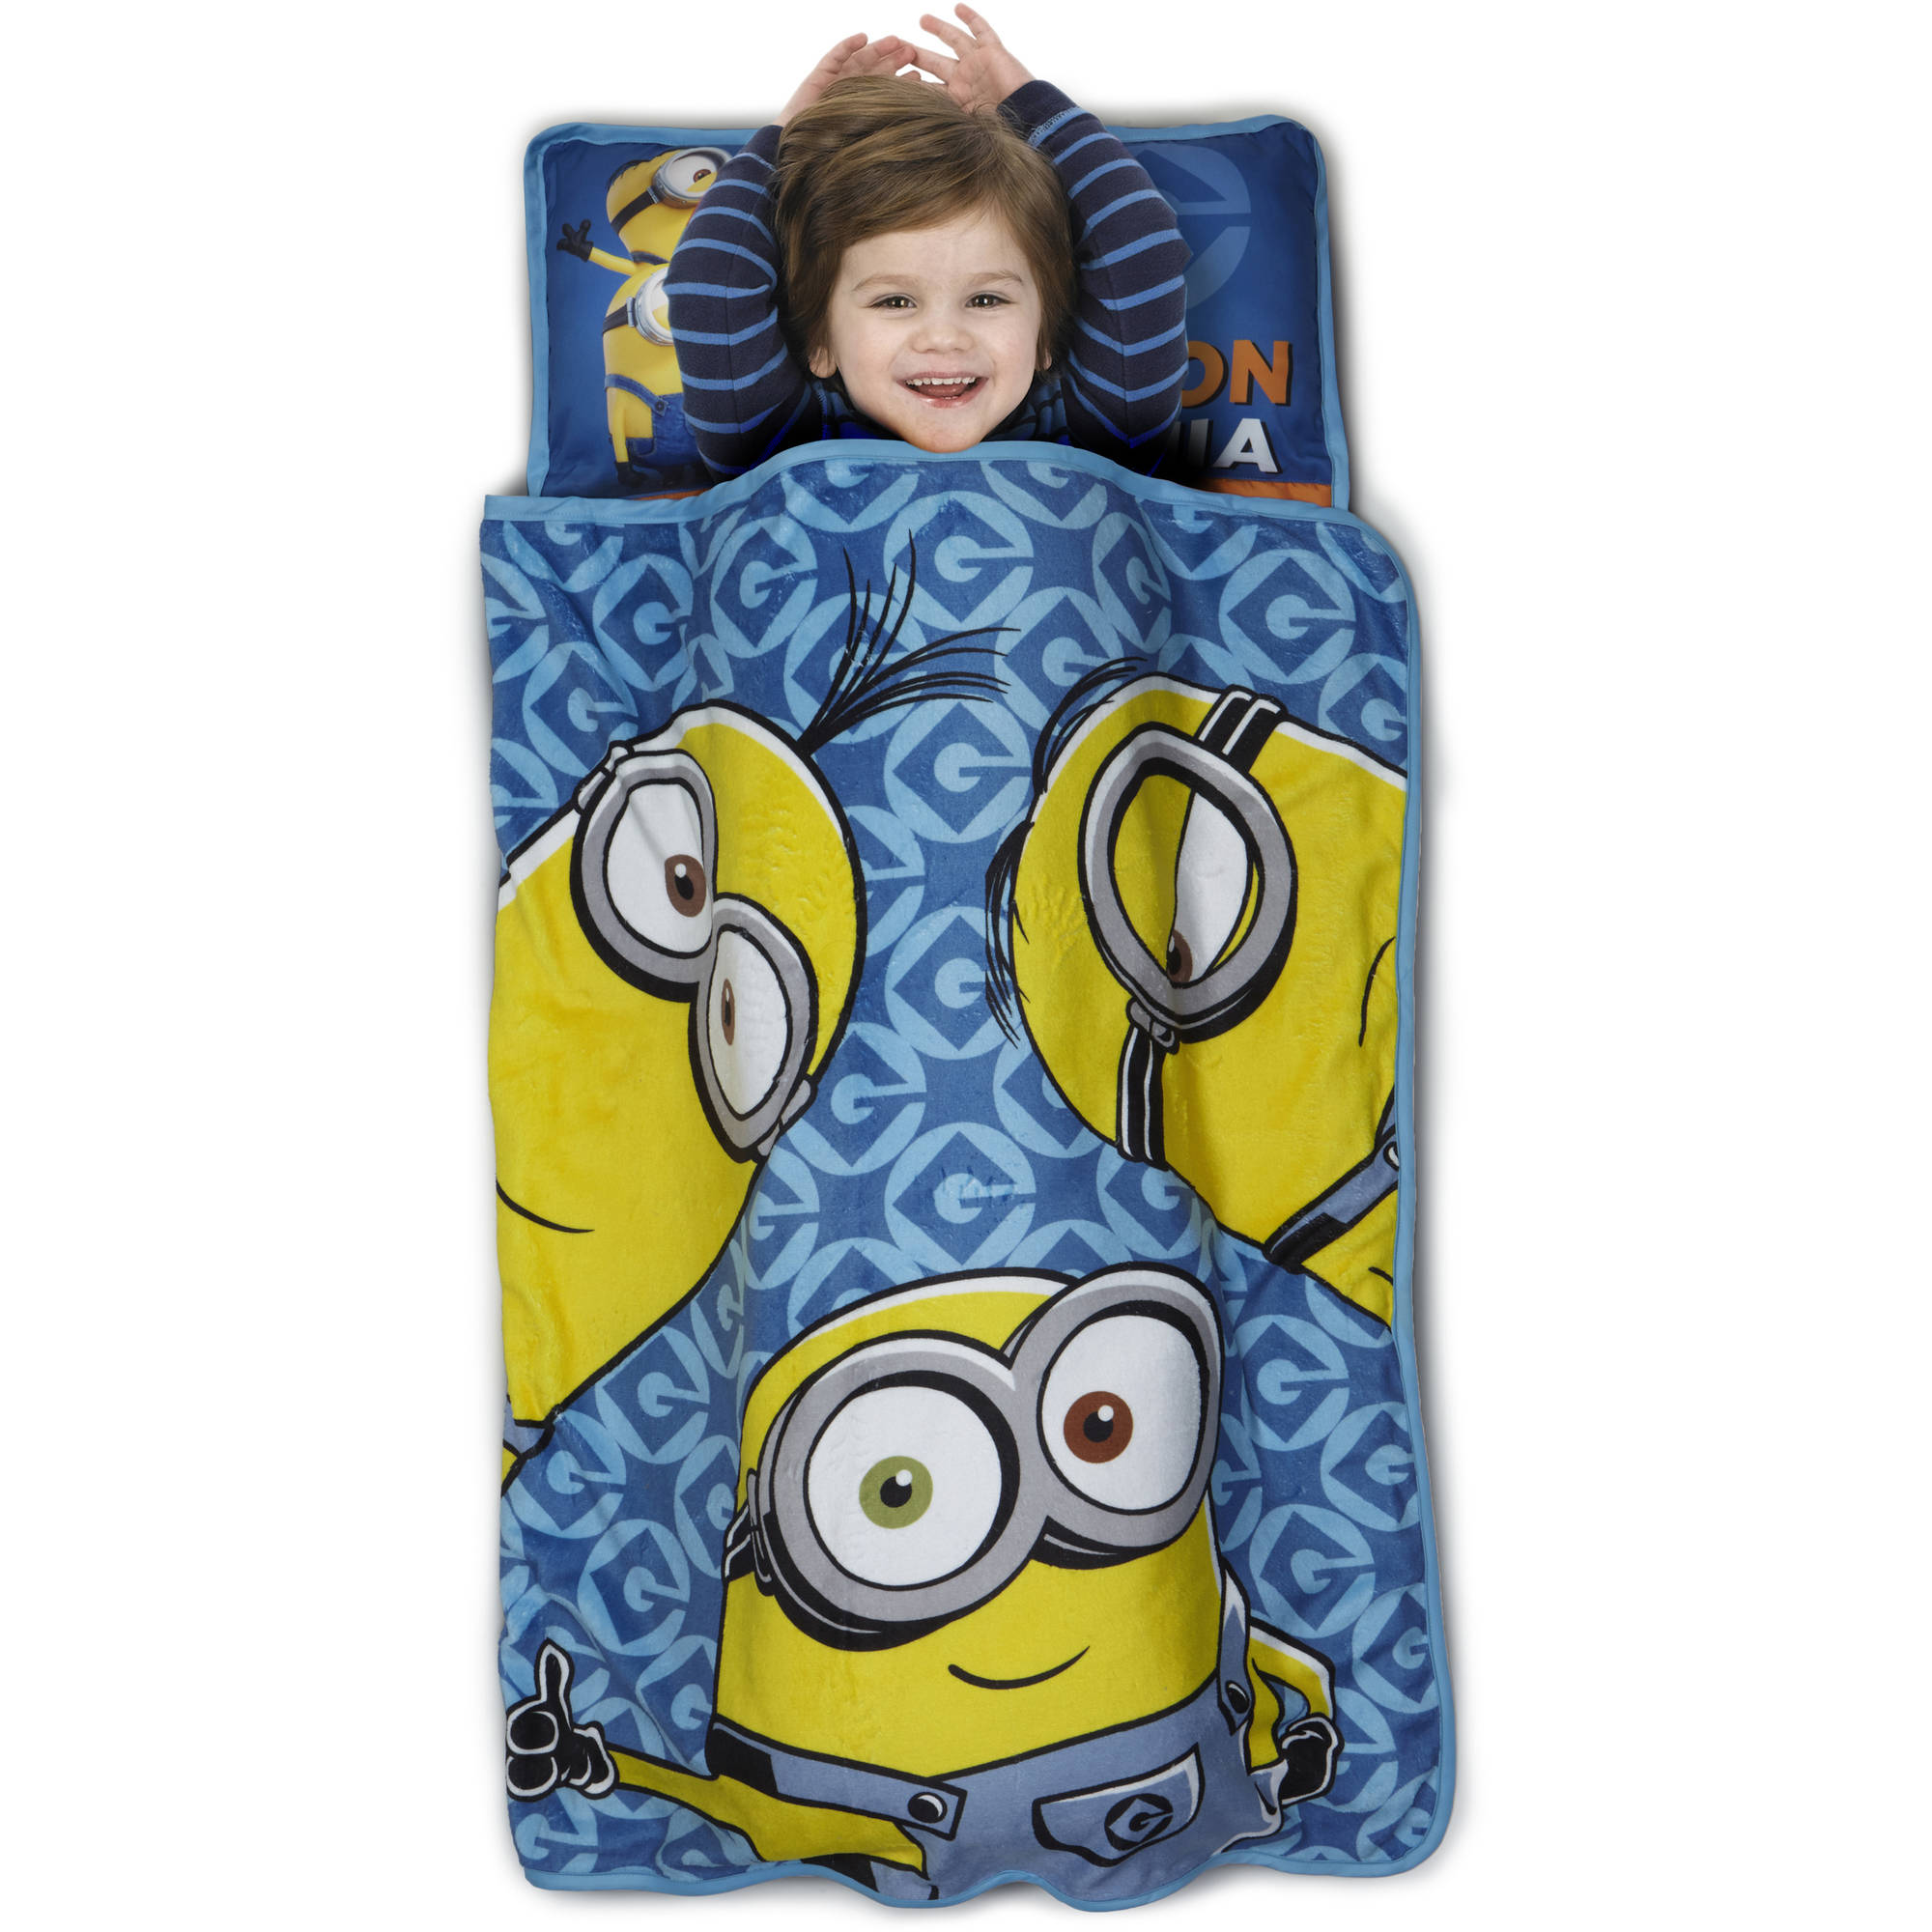 Minions One In A Million Toddler Nap Mat